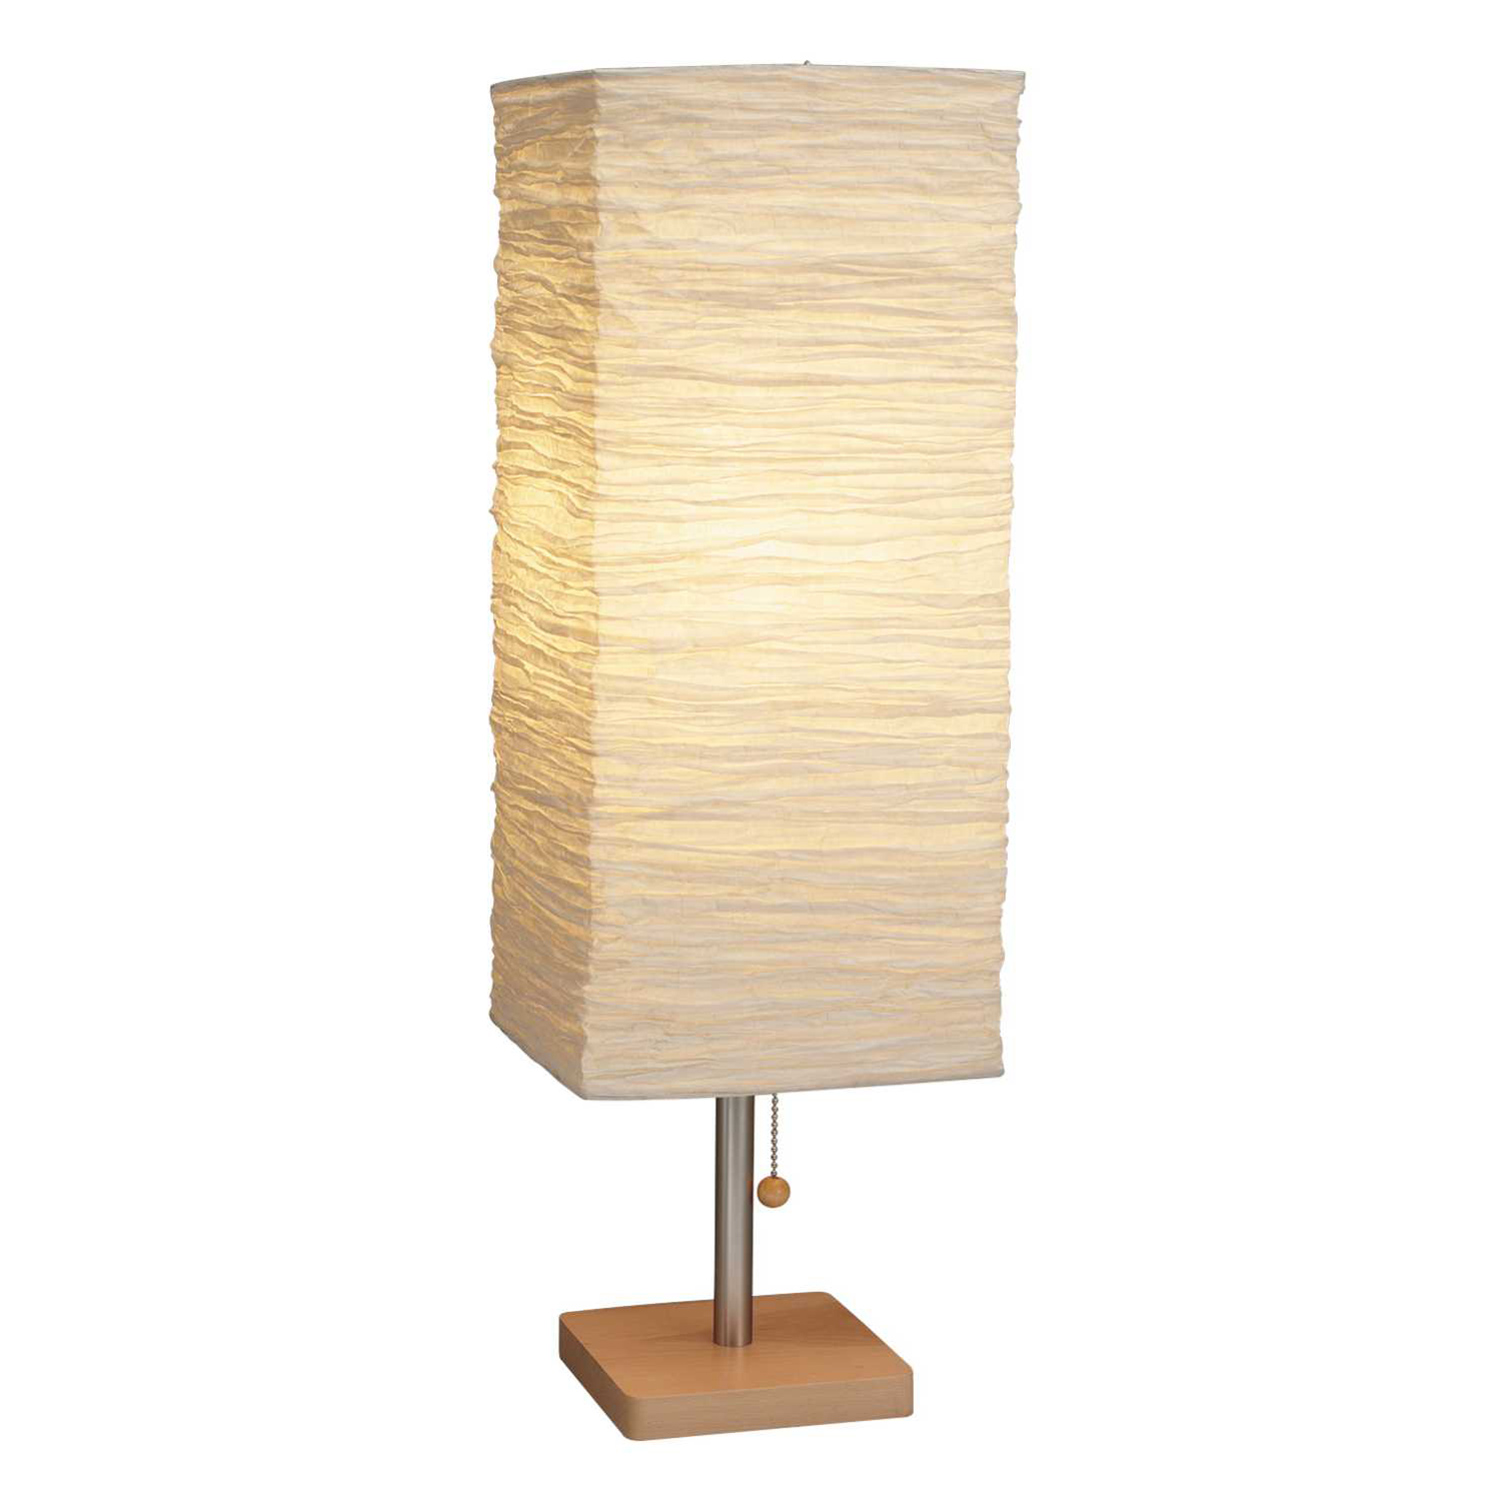 Adesso Dune Tall Table Lamp, Natural Finish by Generic